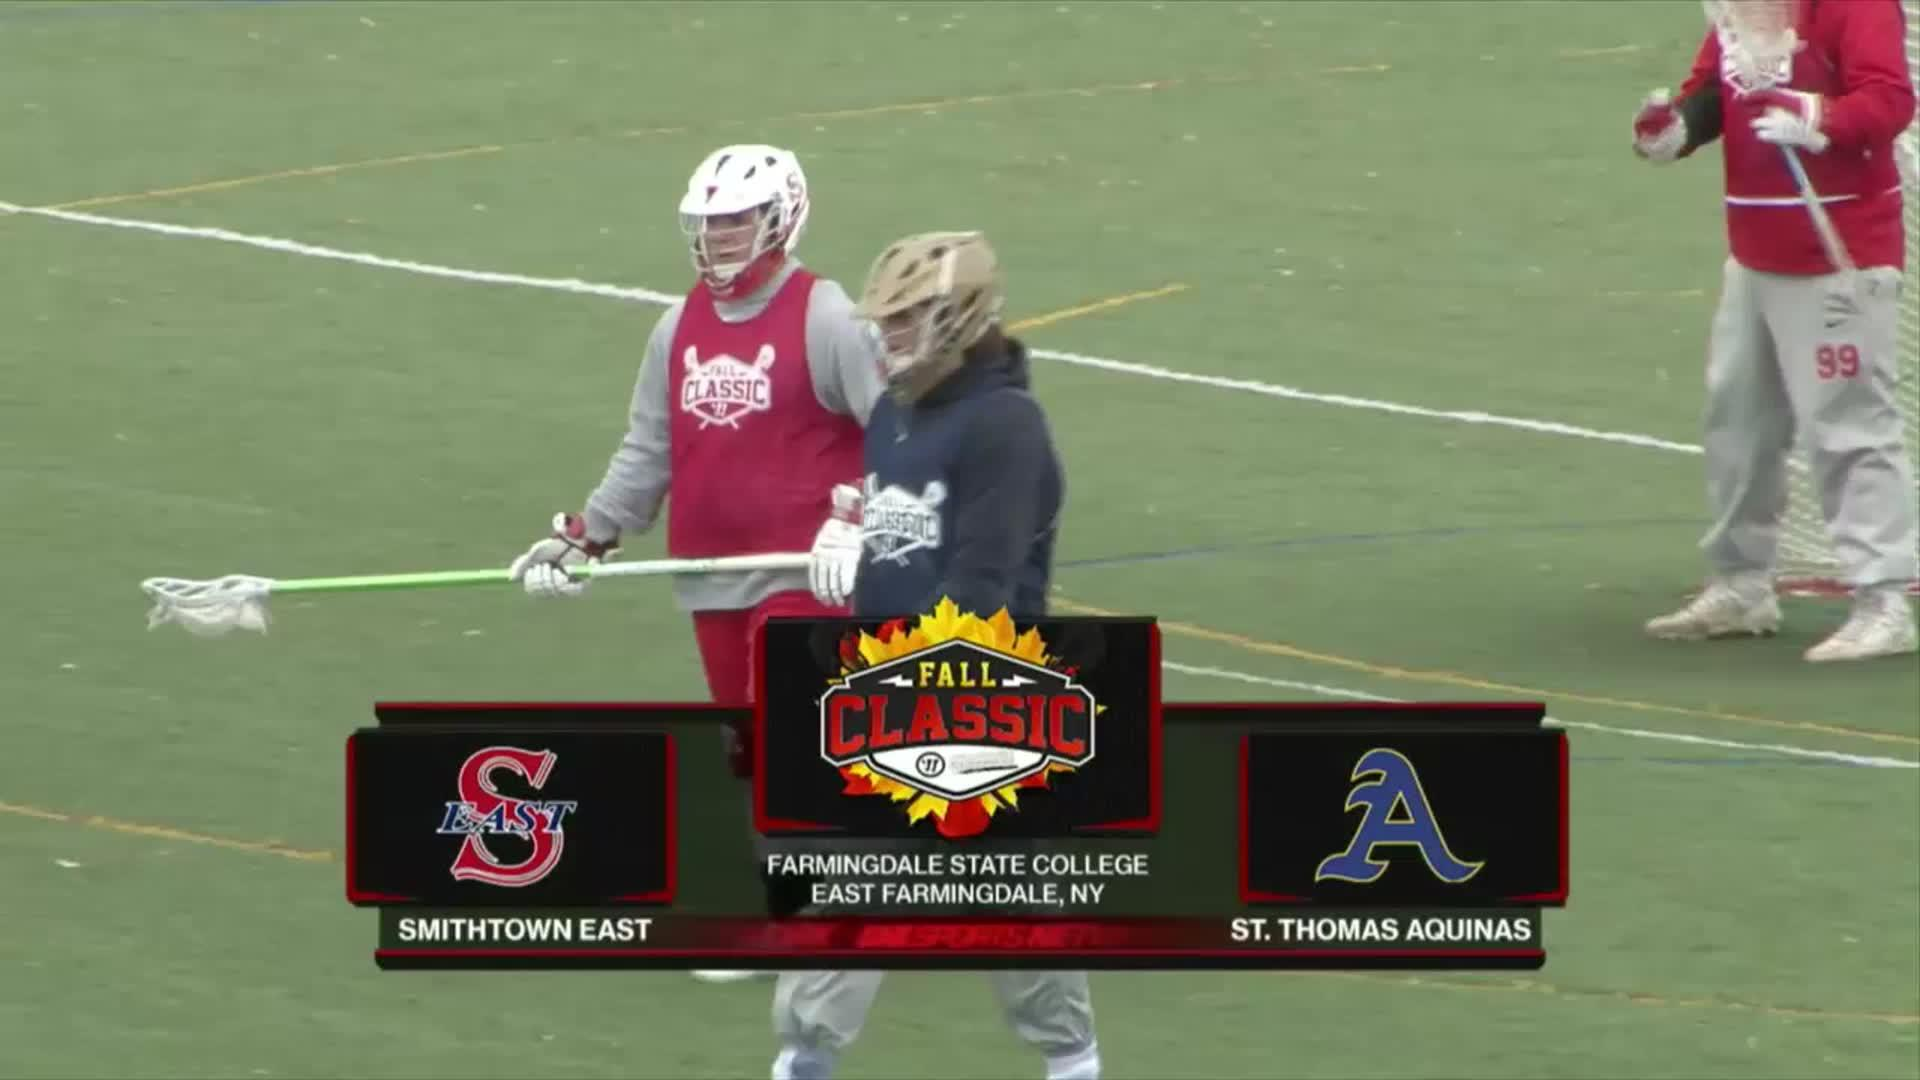 Smithtown East vs St. Thomas Aquinas